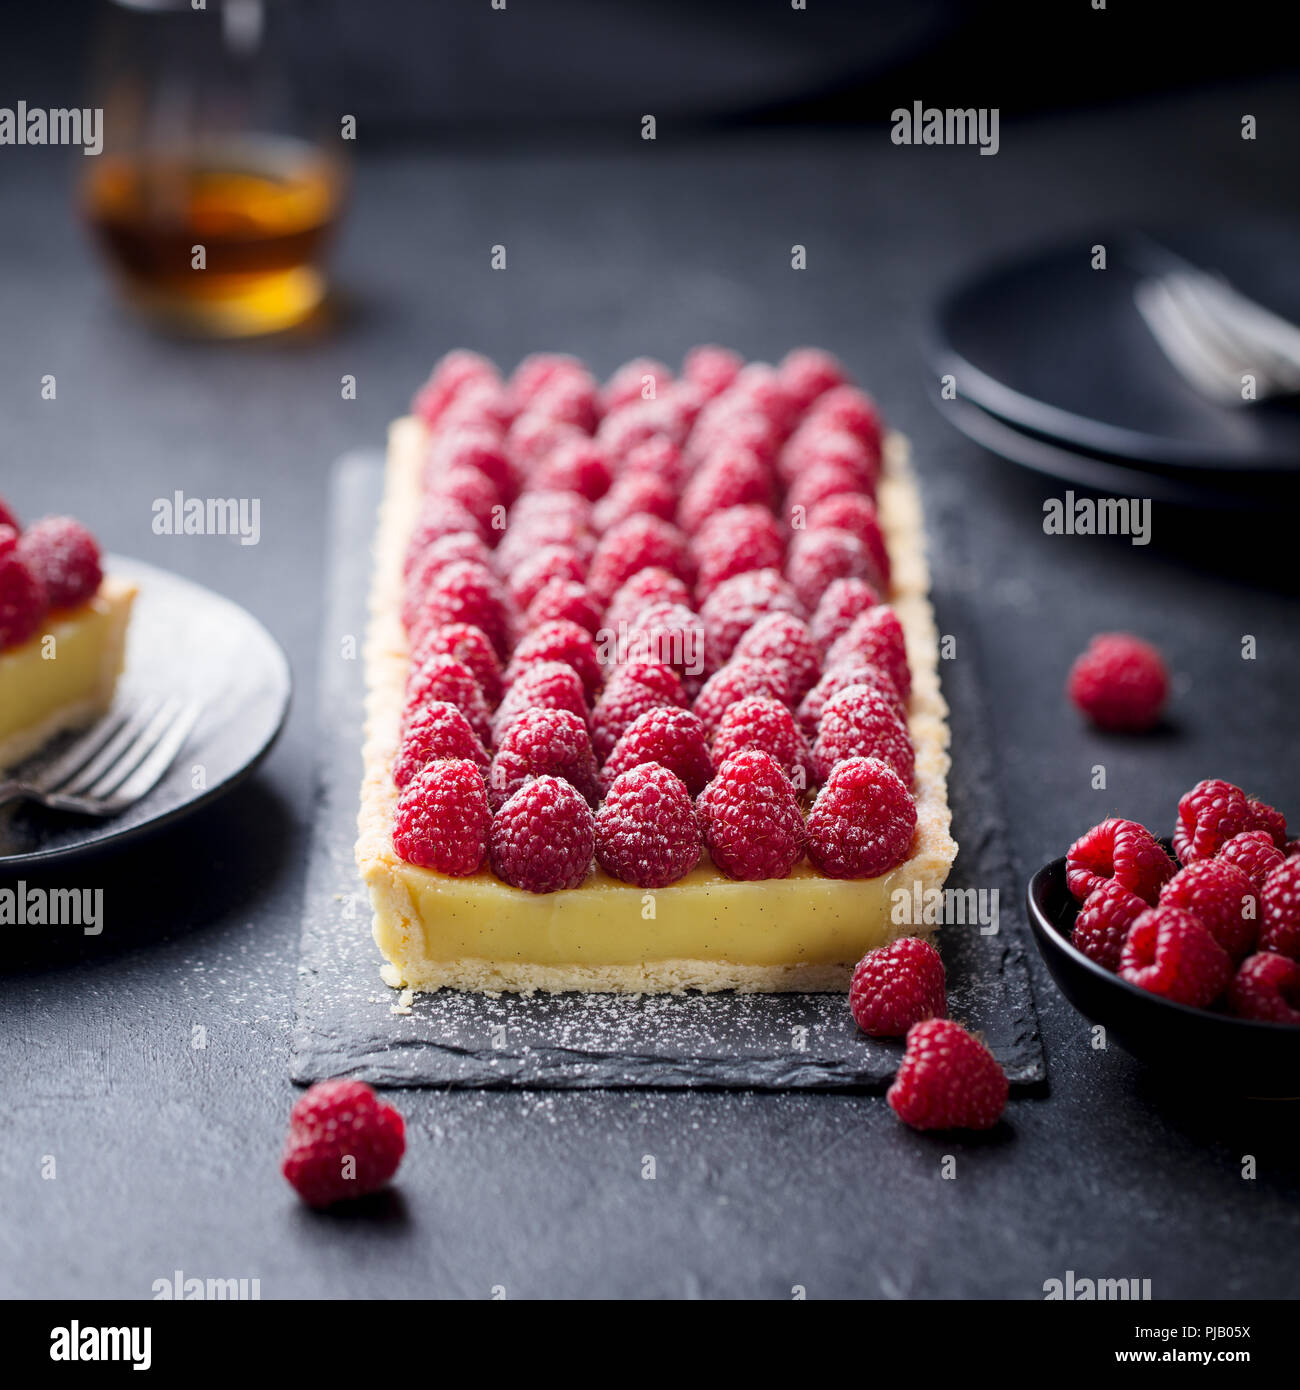 Raspberry tart with vanilla custard and white chocolate on slate board. Black stone background. Stock Photo